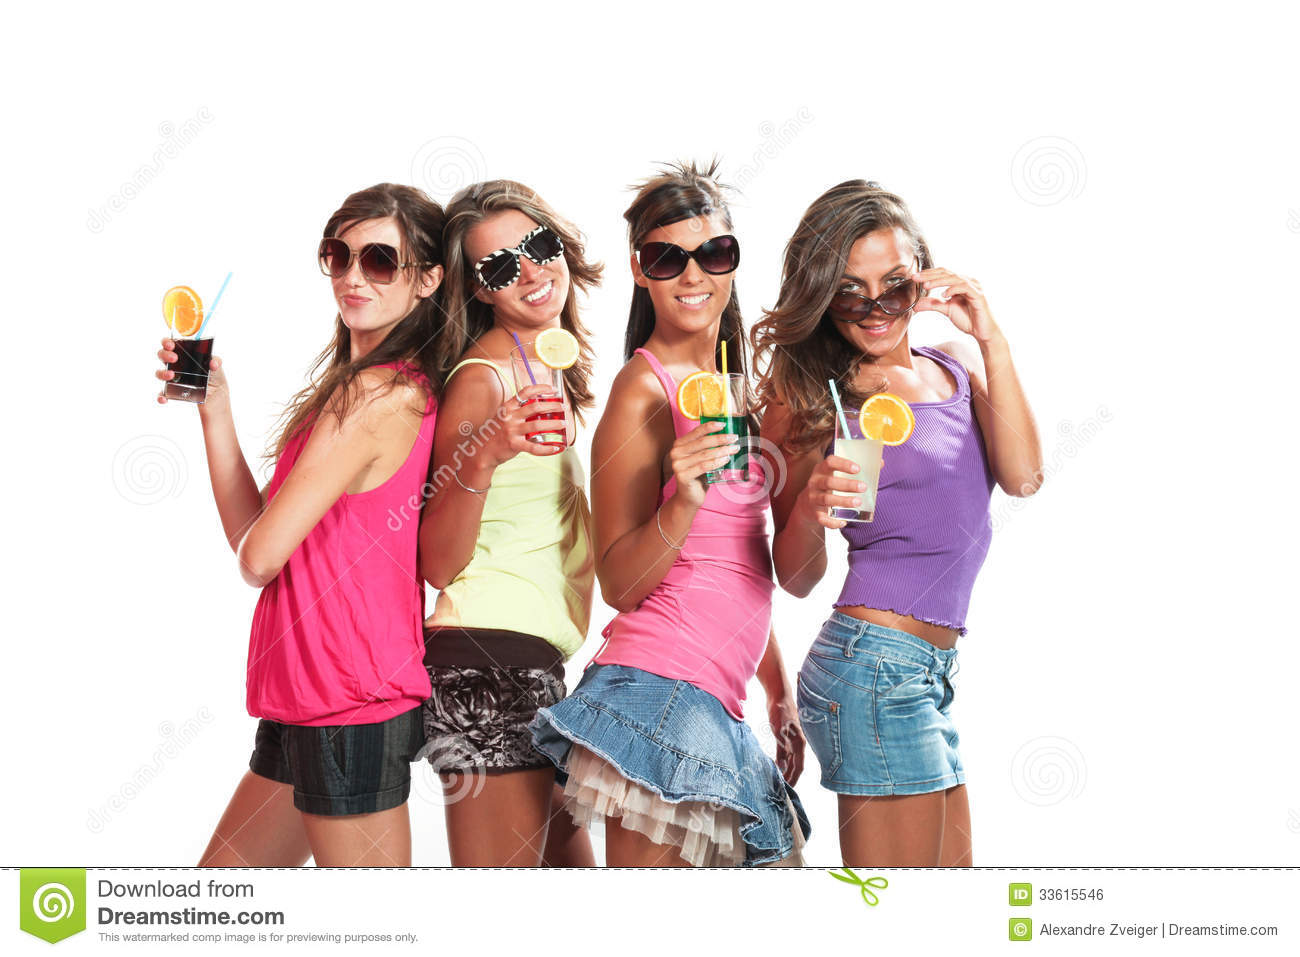 Girl Glasses Wallpaper Four Girls Fun With A Drink Royalty Free Stock Image